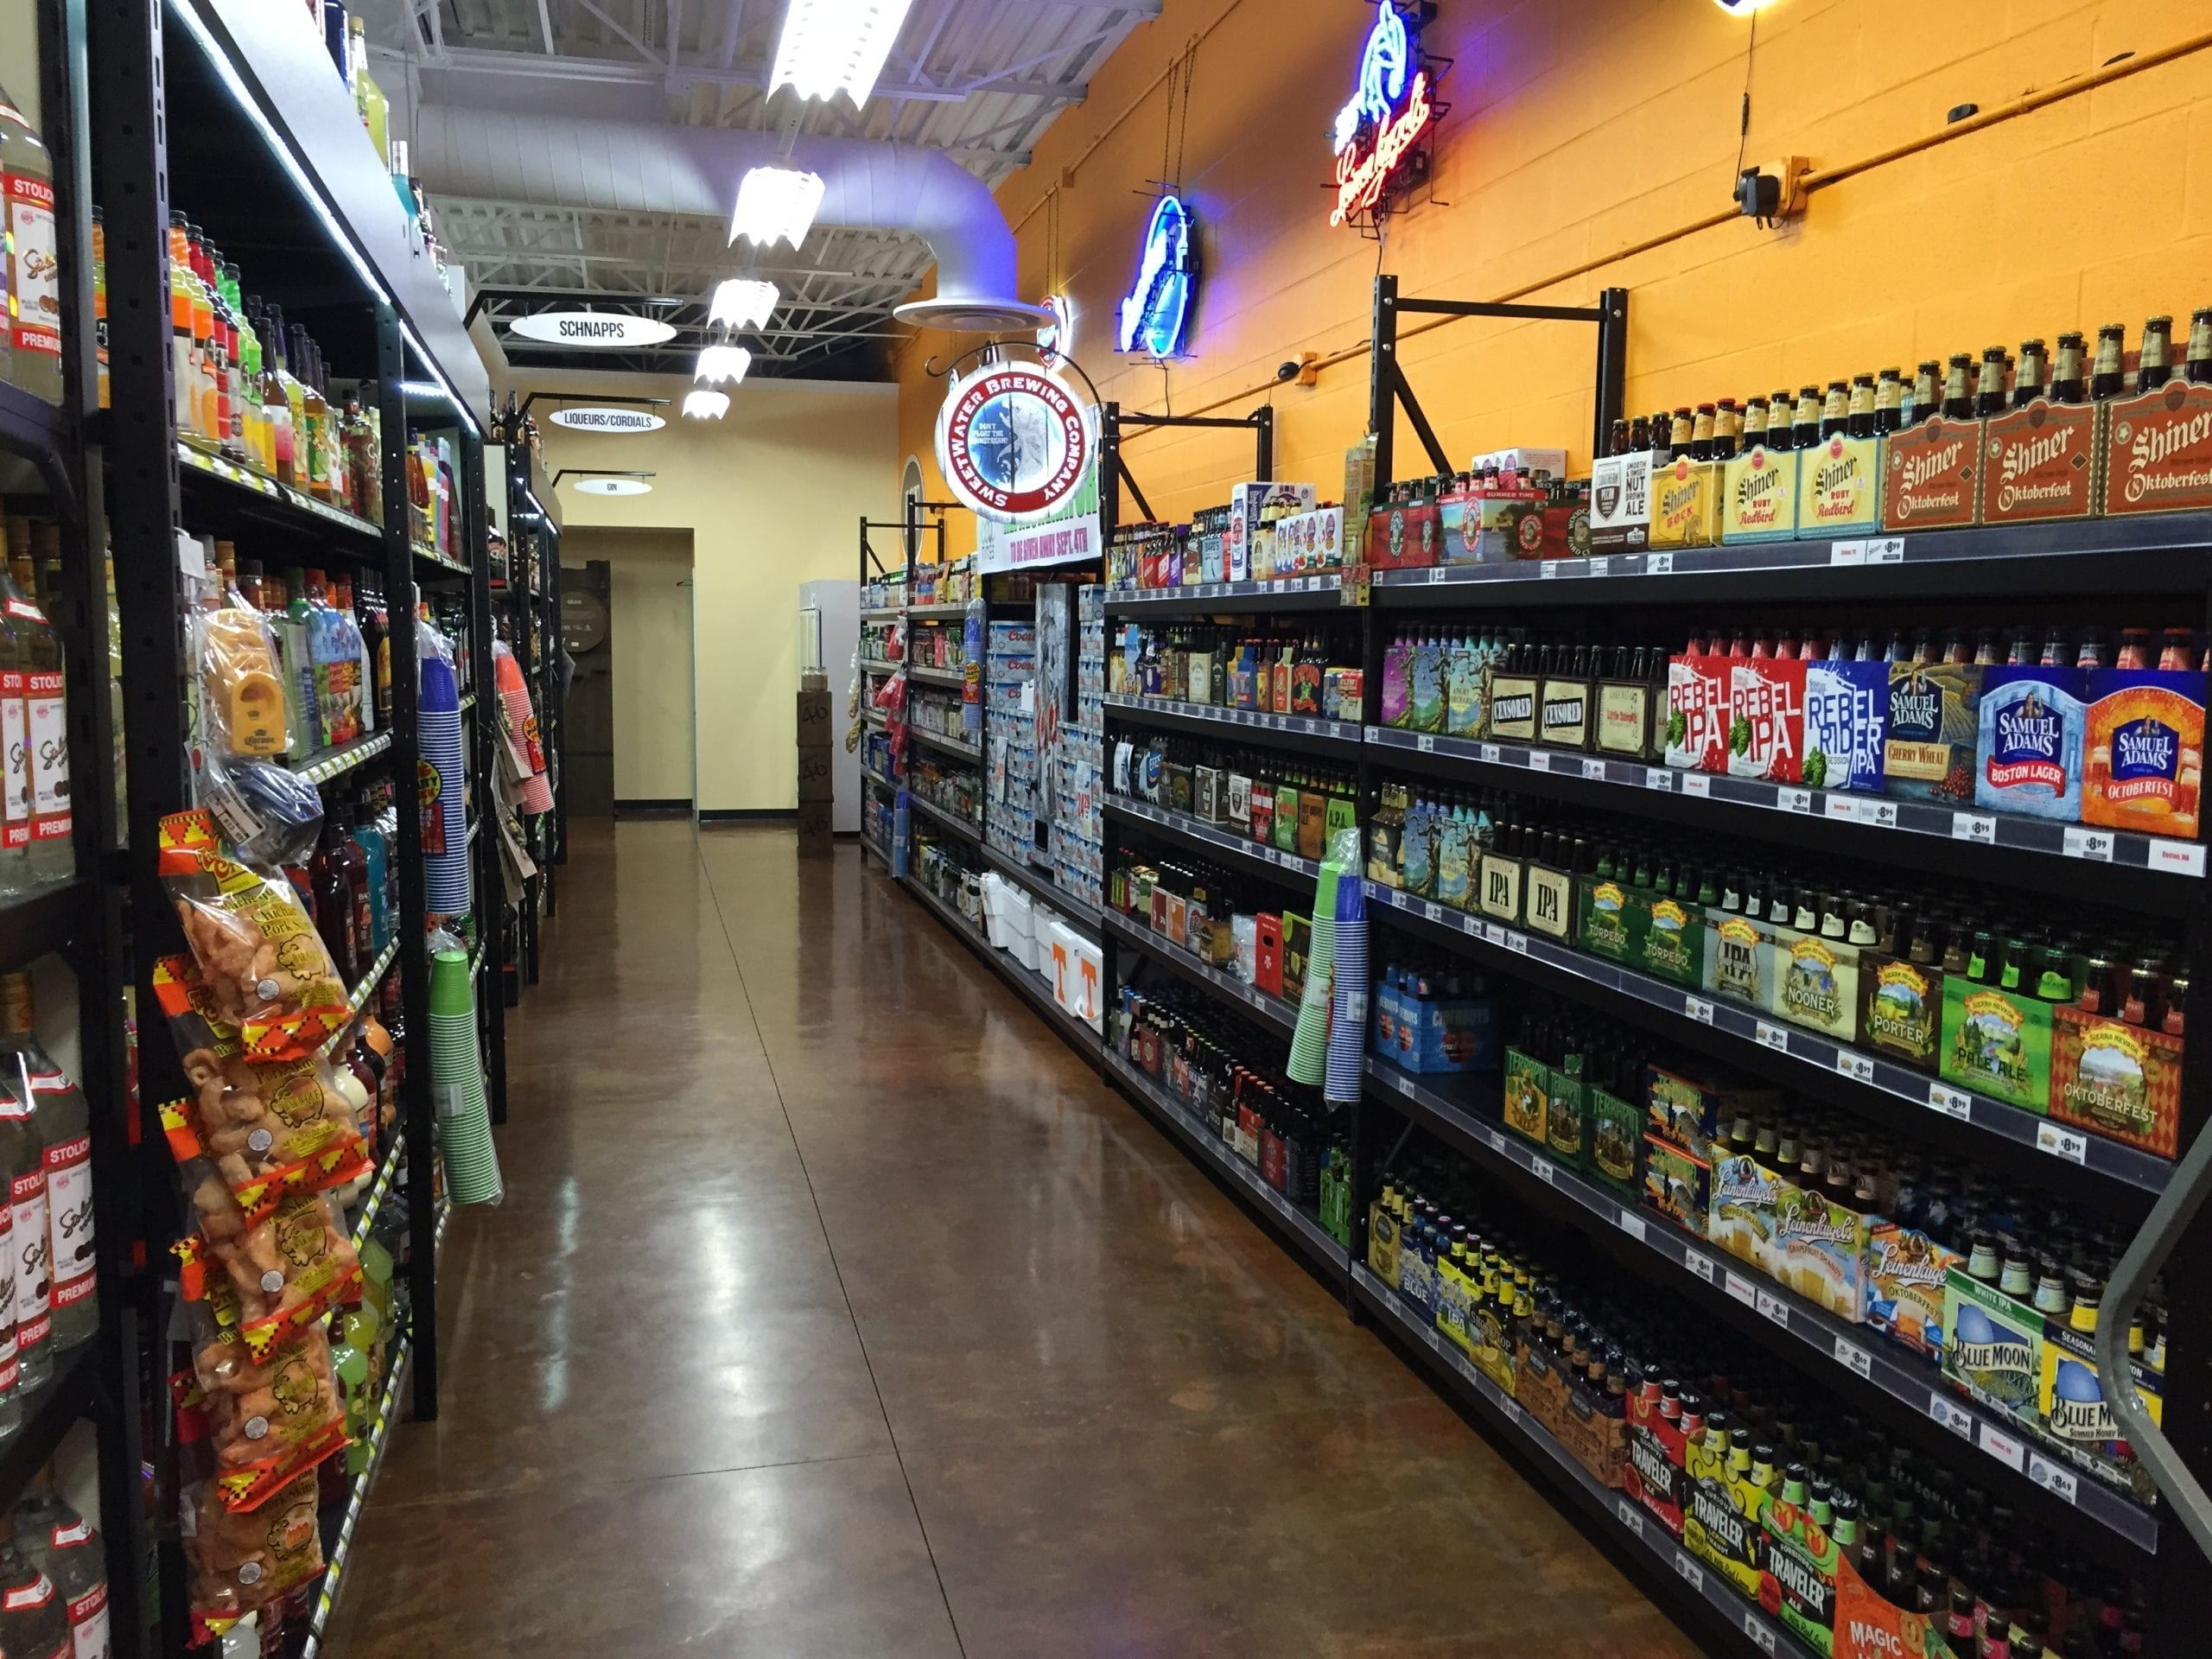 Clearspan Shelving for Liquor Stores